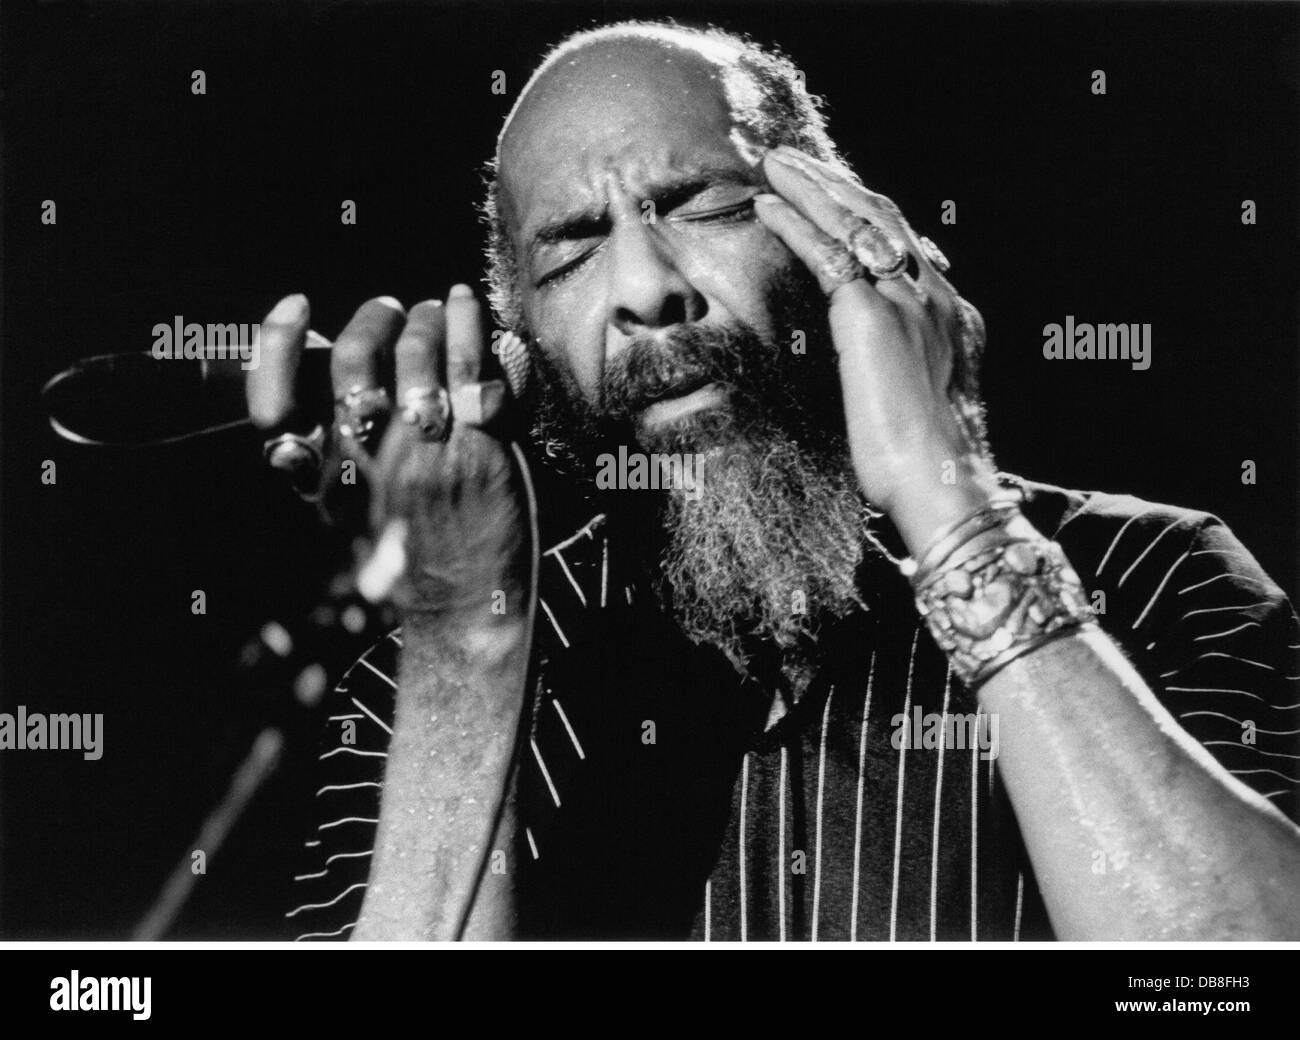 Havens, Richie, 21.1.1941 - 22.4.2013, American musician (folk music), singer, portrait, during stage performance, - Stock Image